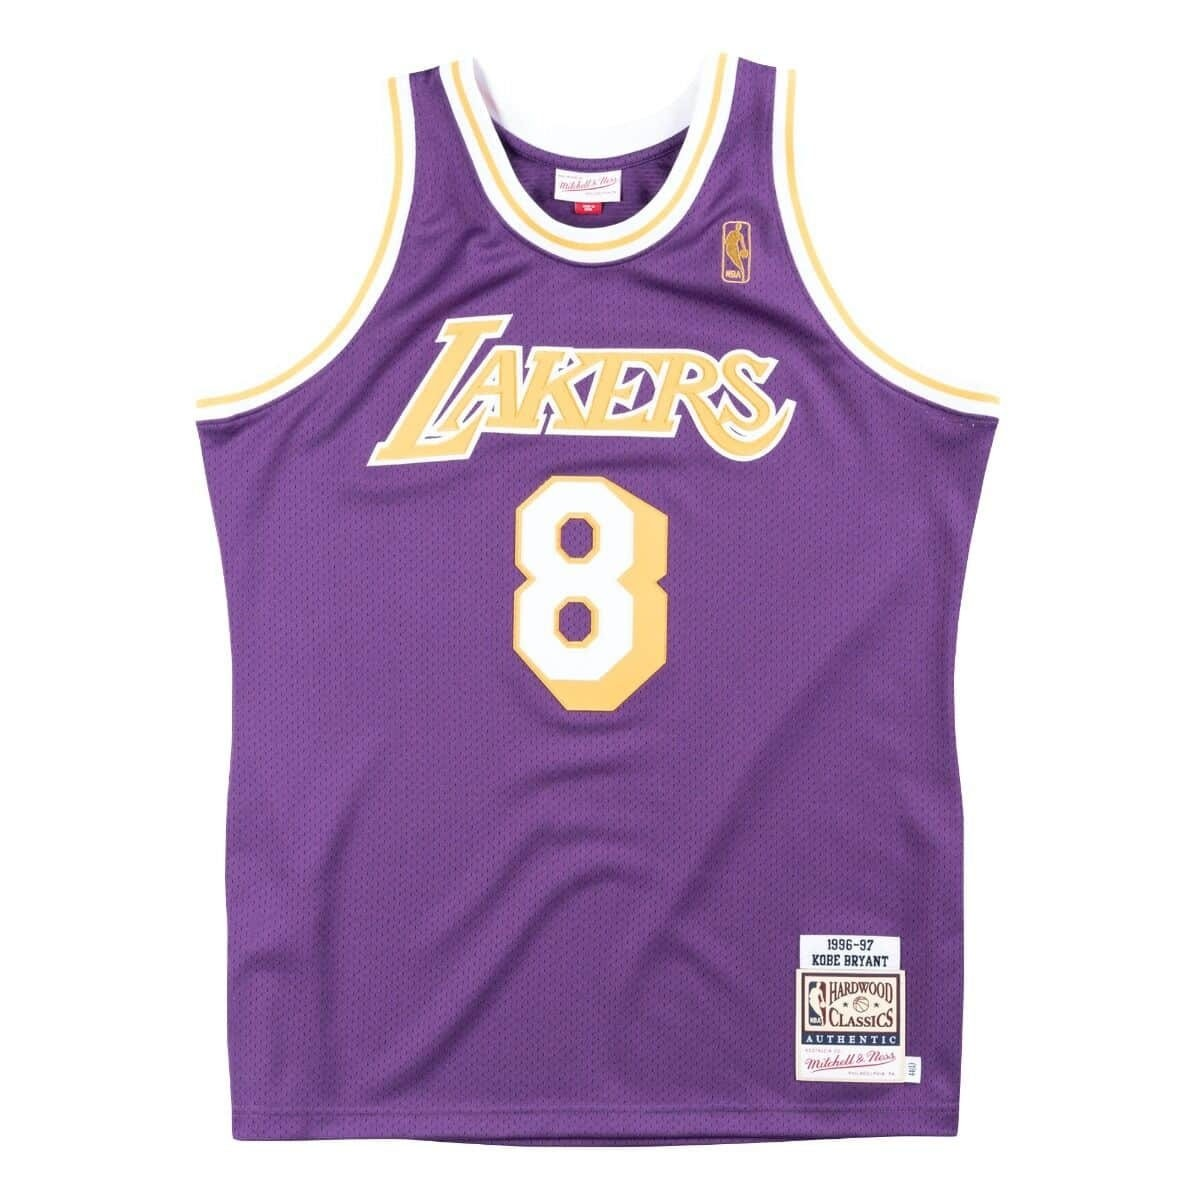 Mitchell & Ness Authentic Jersey L.A. Lakers Road Kobe Bryant '1996-97'